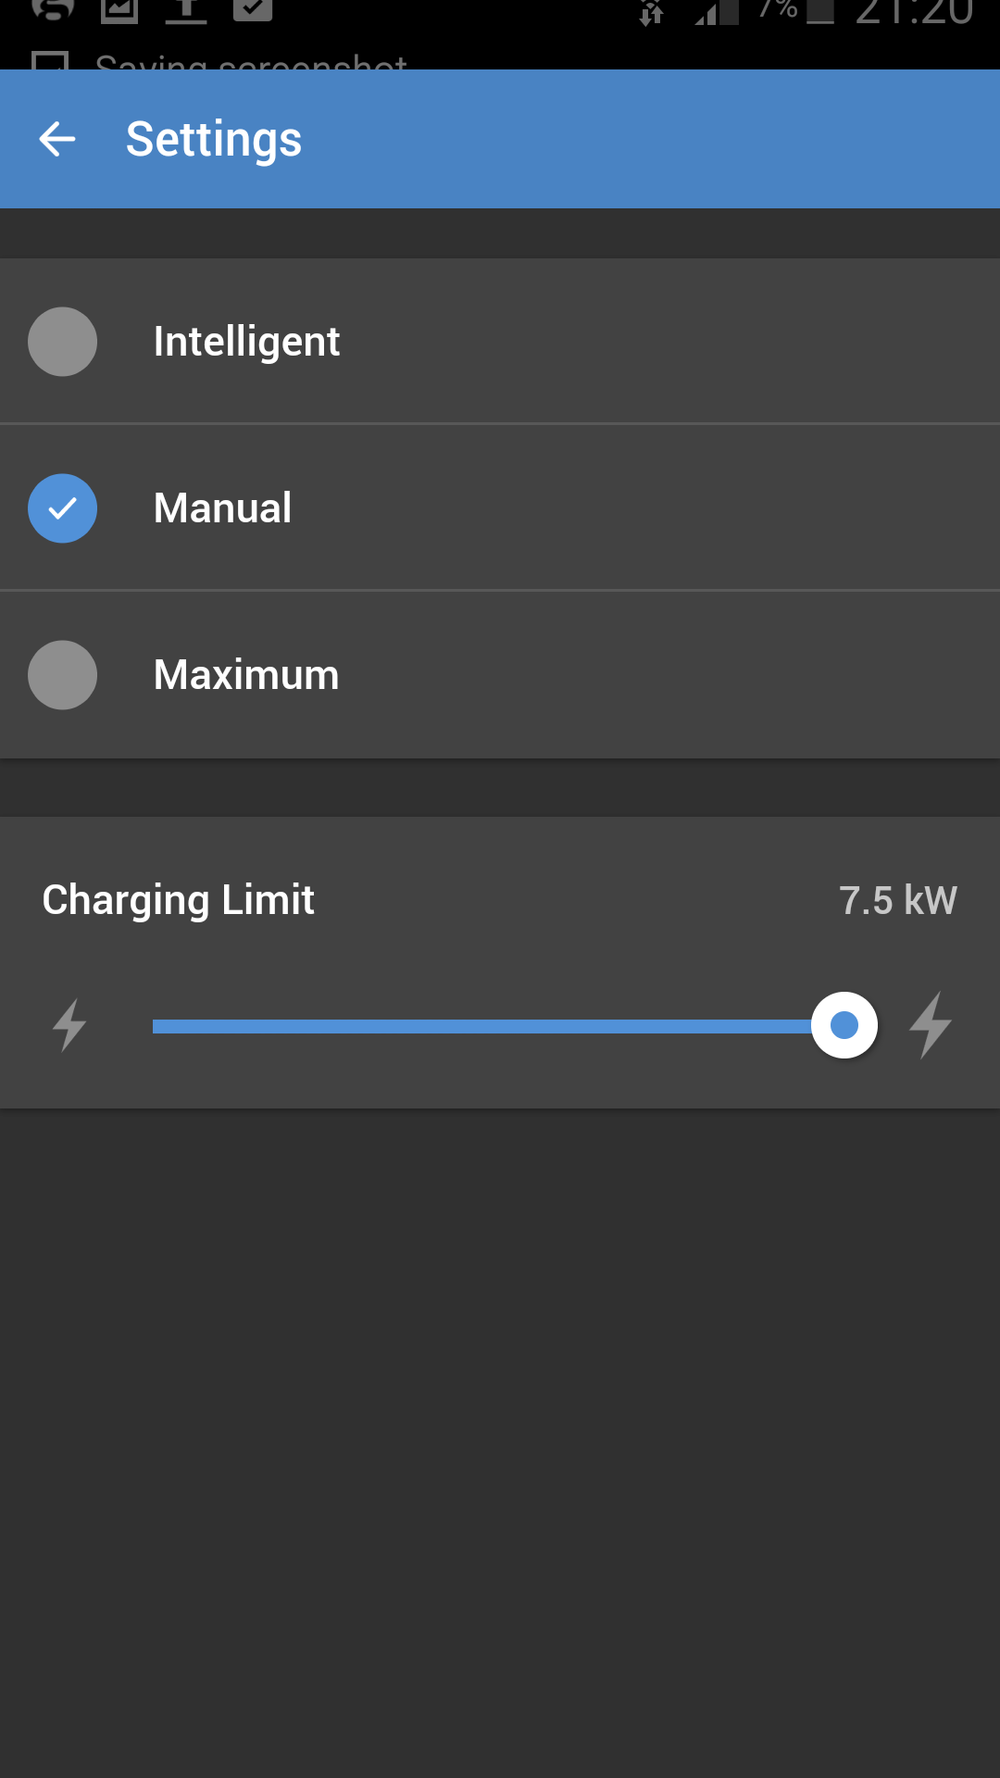 EV charging options. When set to intelligent charging uses ony excess power from the solar system.